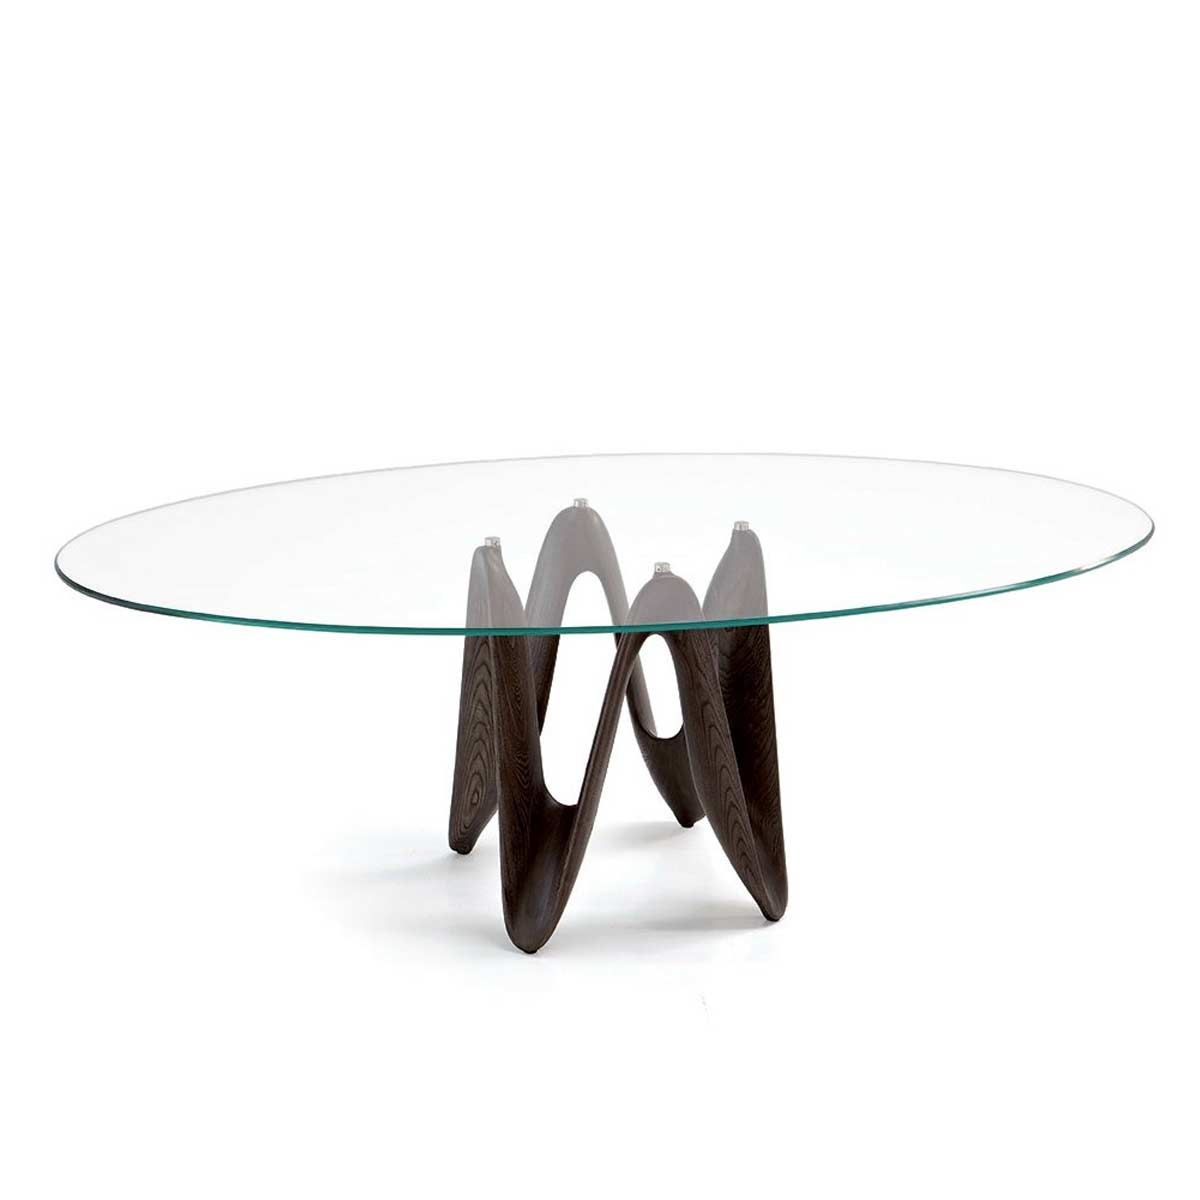 Lambda Oval Glass Dining Table Klarity Glass Furniture - Glass oval dining table